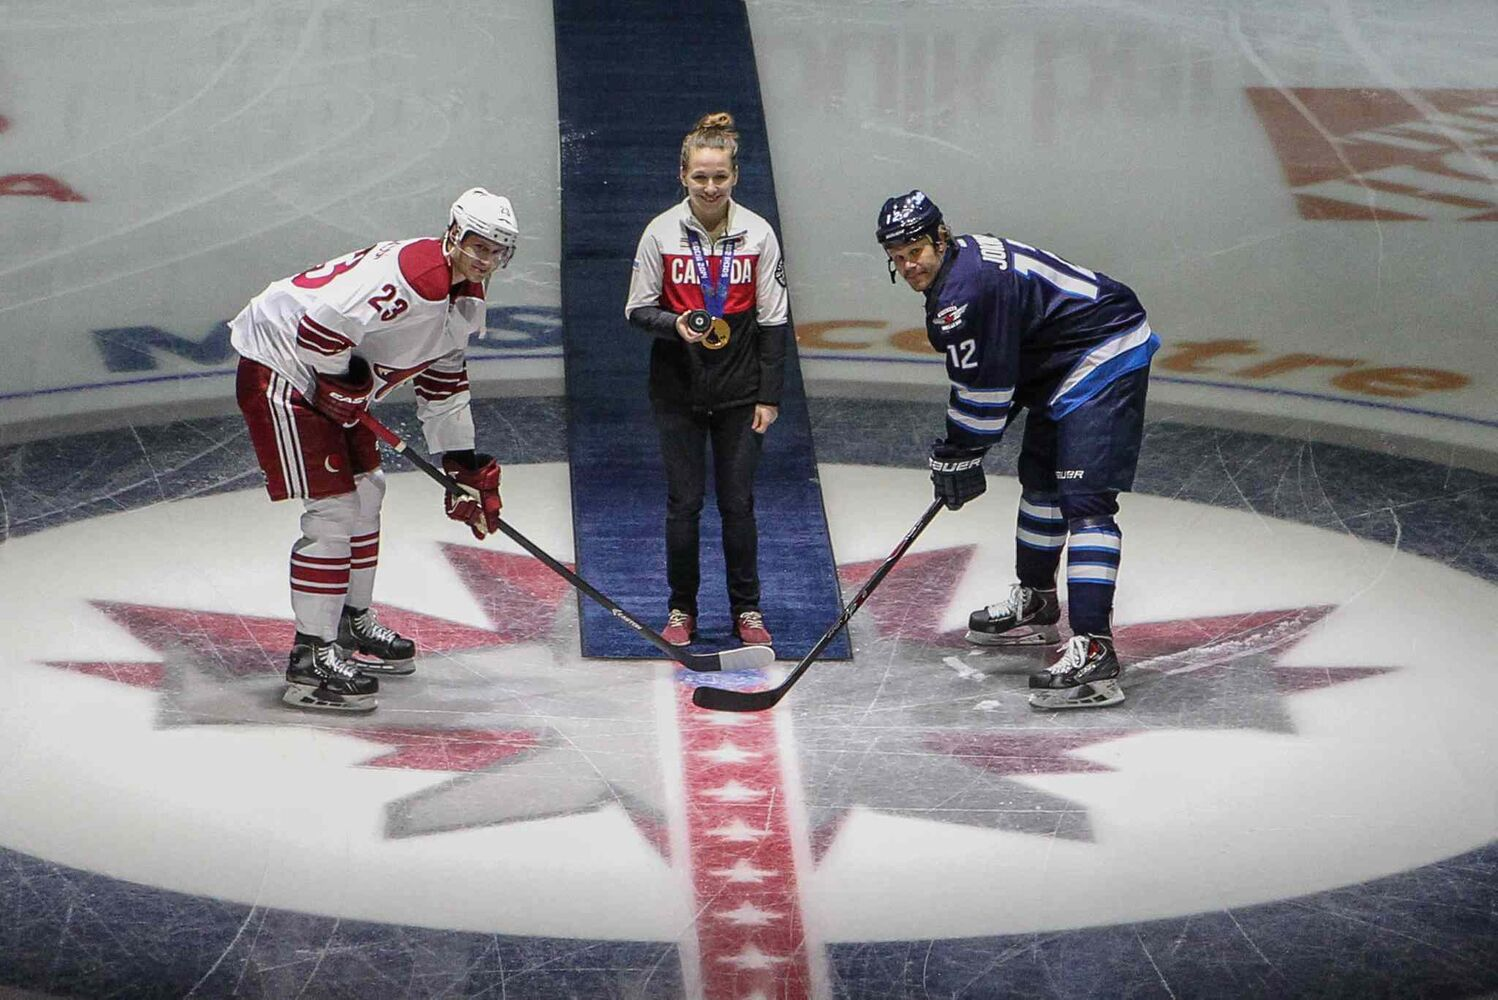 Olympian and gold-medal hockey player Jocelyne Larocque drops the puck for Winnipeg Jets' Olli Jokinen (12) and Phoenix Coyotes' Oliver Ekman-Larsson (23) before the Winnipeg Jets game against the Phoenix Coyotes at MTS Centre Thursday night. (Mike Deal / Winnipeg Free Press)